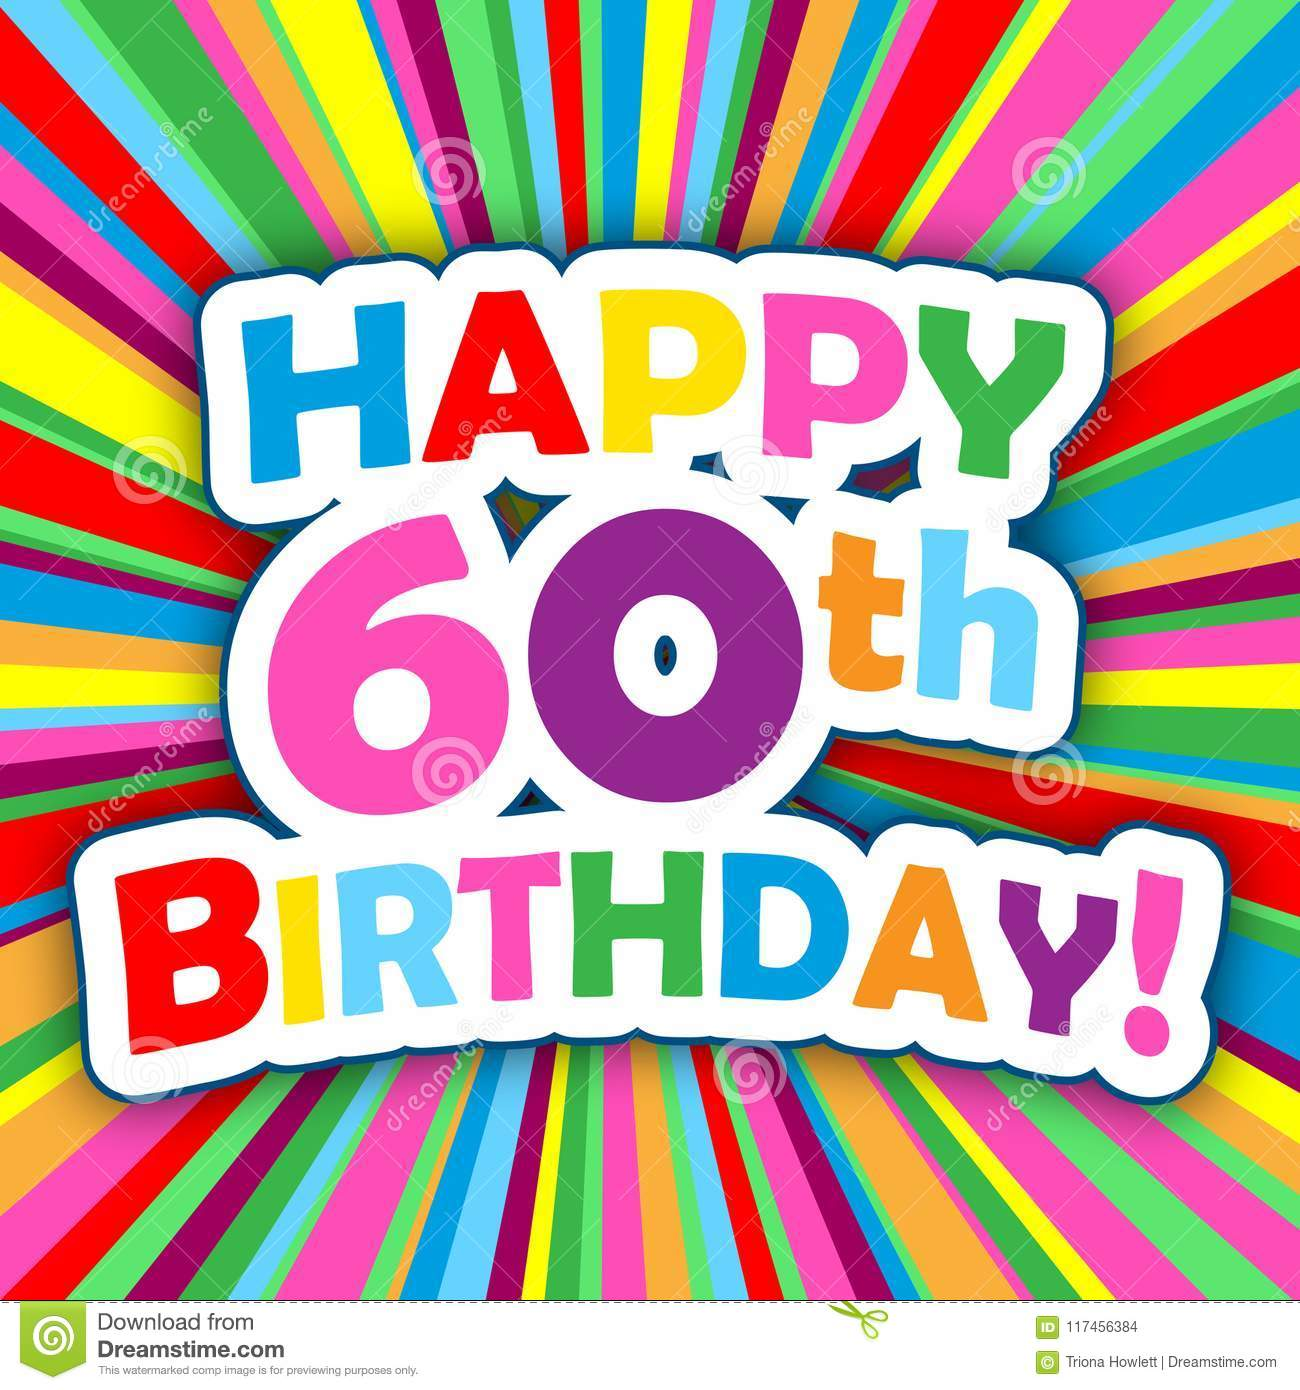 HAPPY 60th BIRTHDAY Card On Bright And Colorful Radial Background Vector Square Format